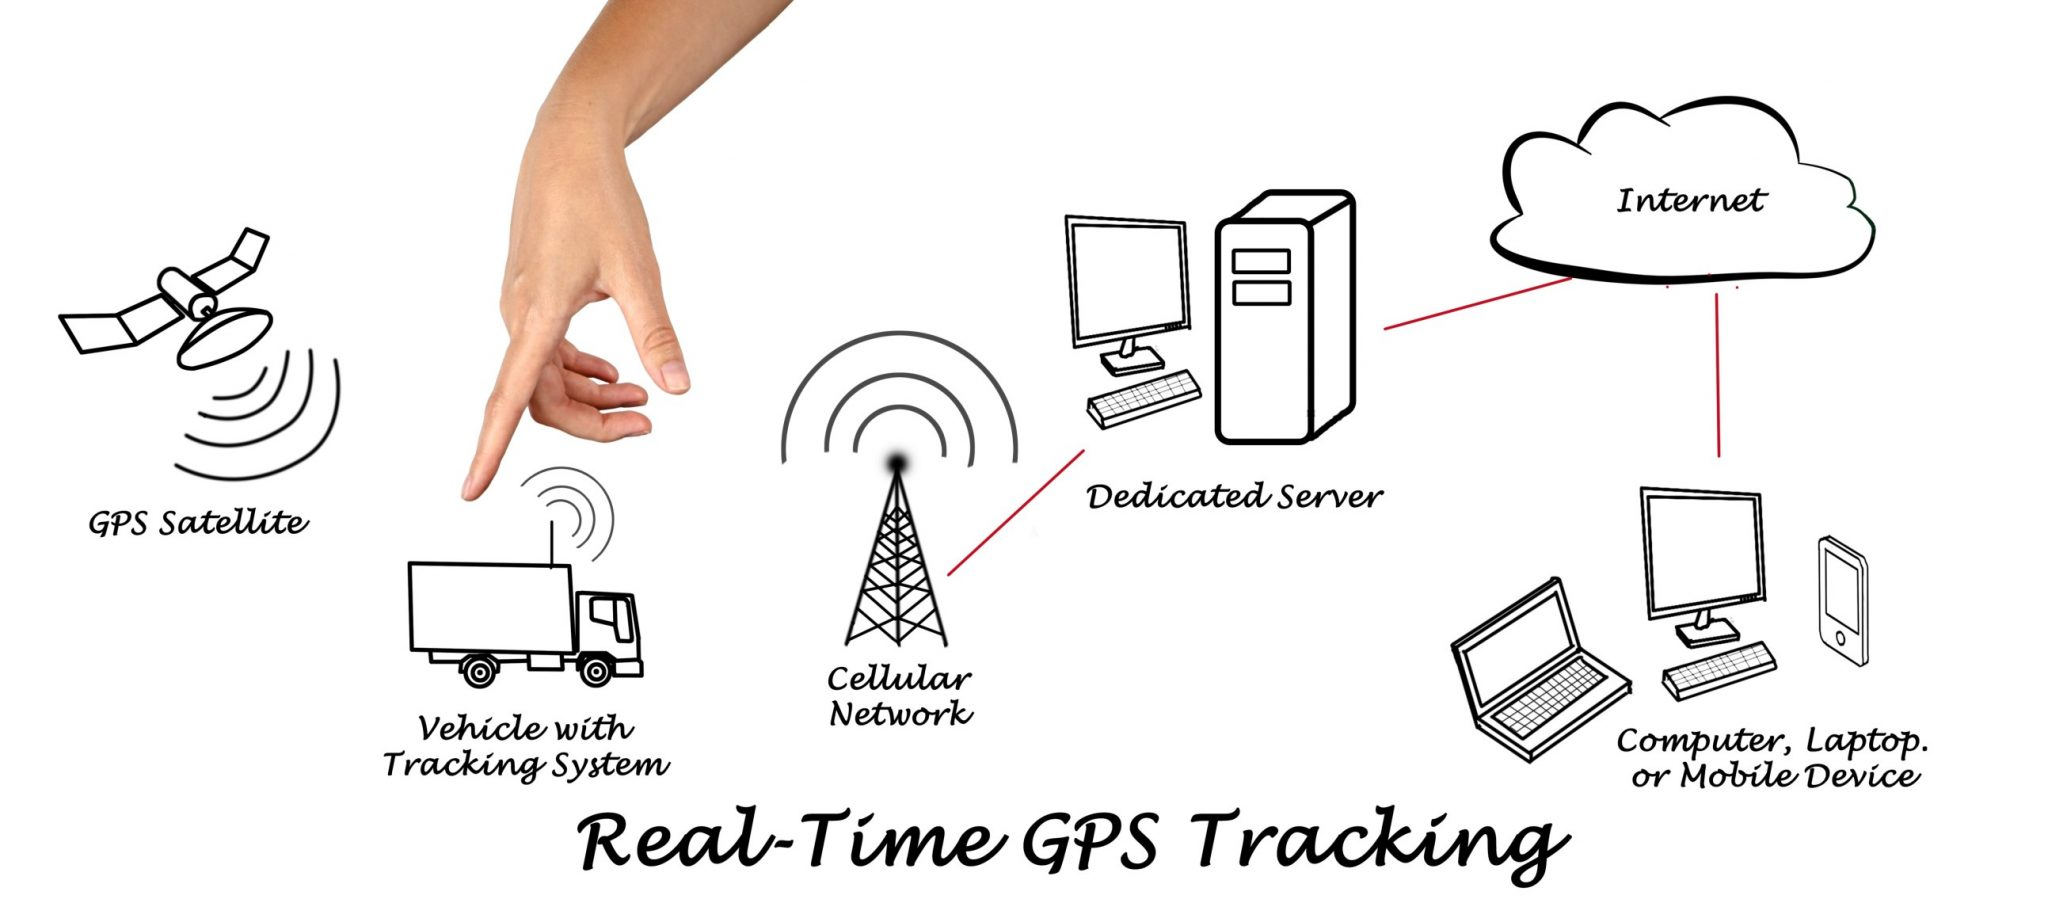 ALTERNATIVE USES FOR A GPS TRACKER